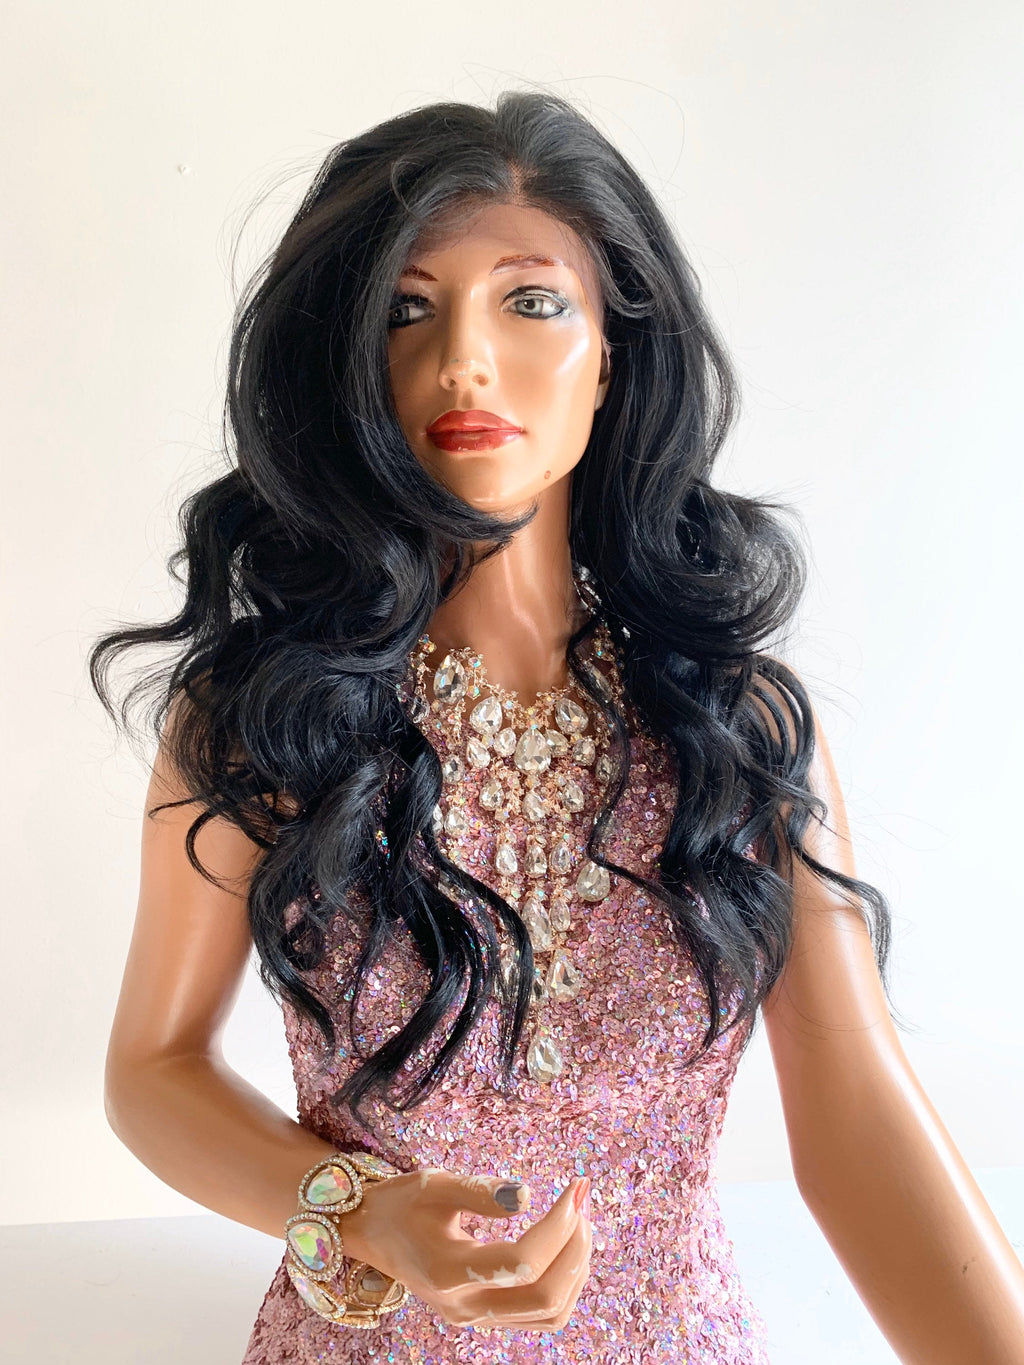 SAINT black 4x4 frontal Swiss lace front wig in 16 inches *420